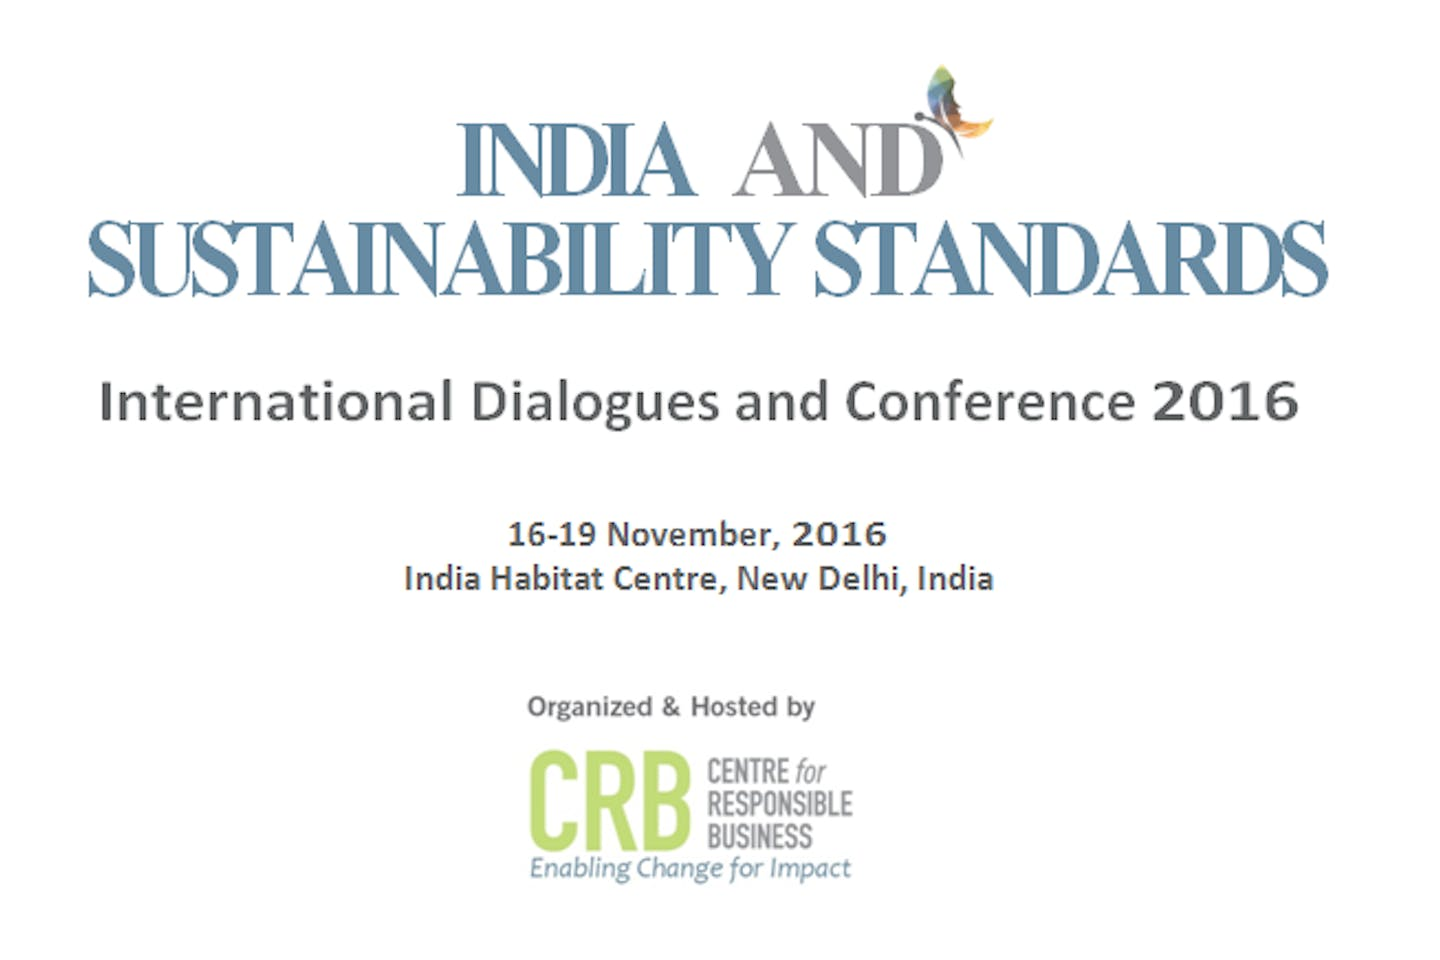 India and Sustainability Standards - International Dialogues and Conference 2016